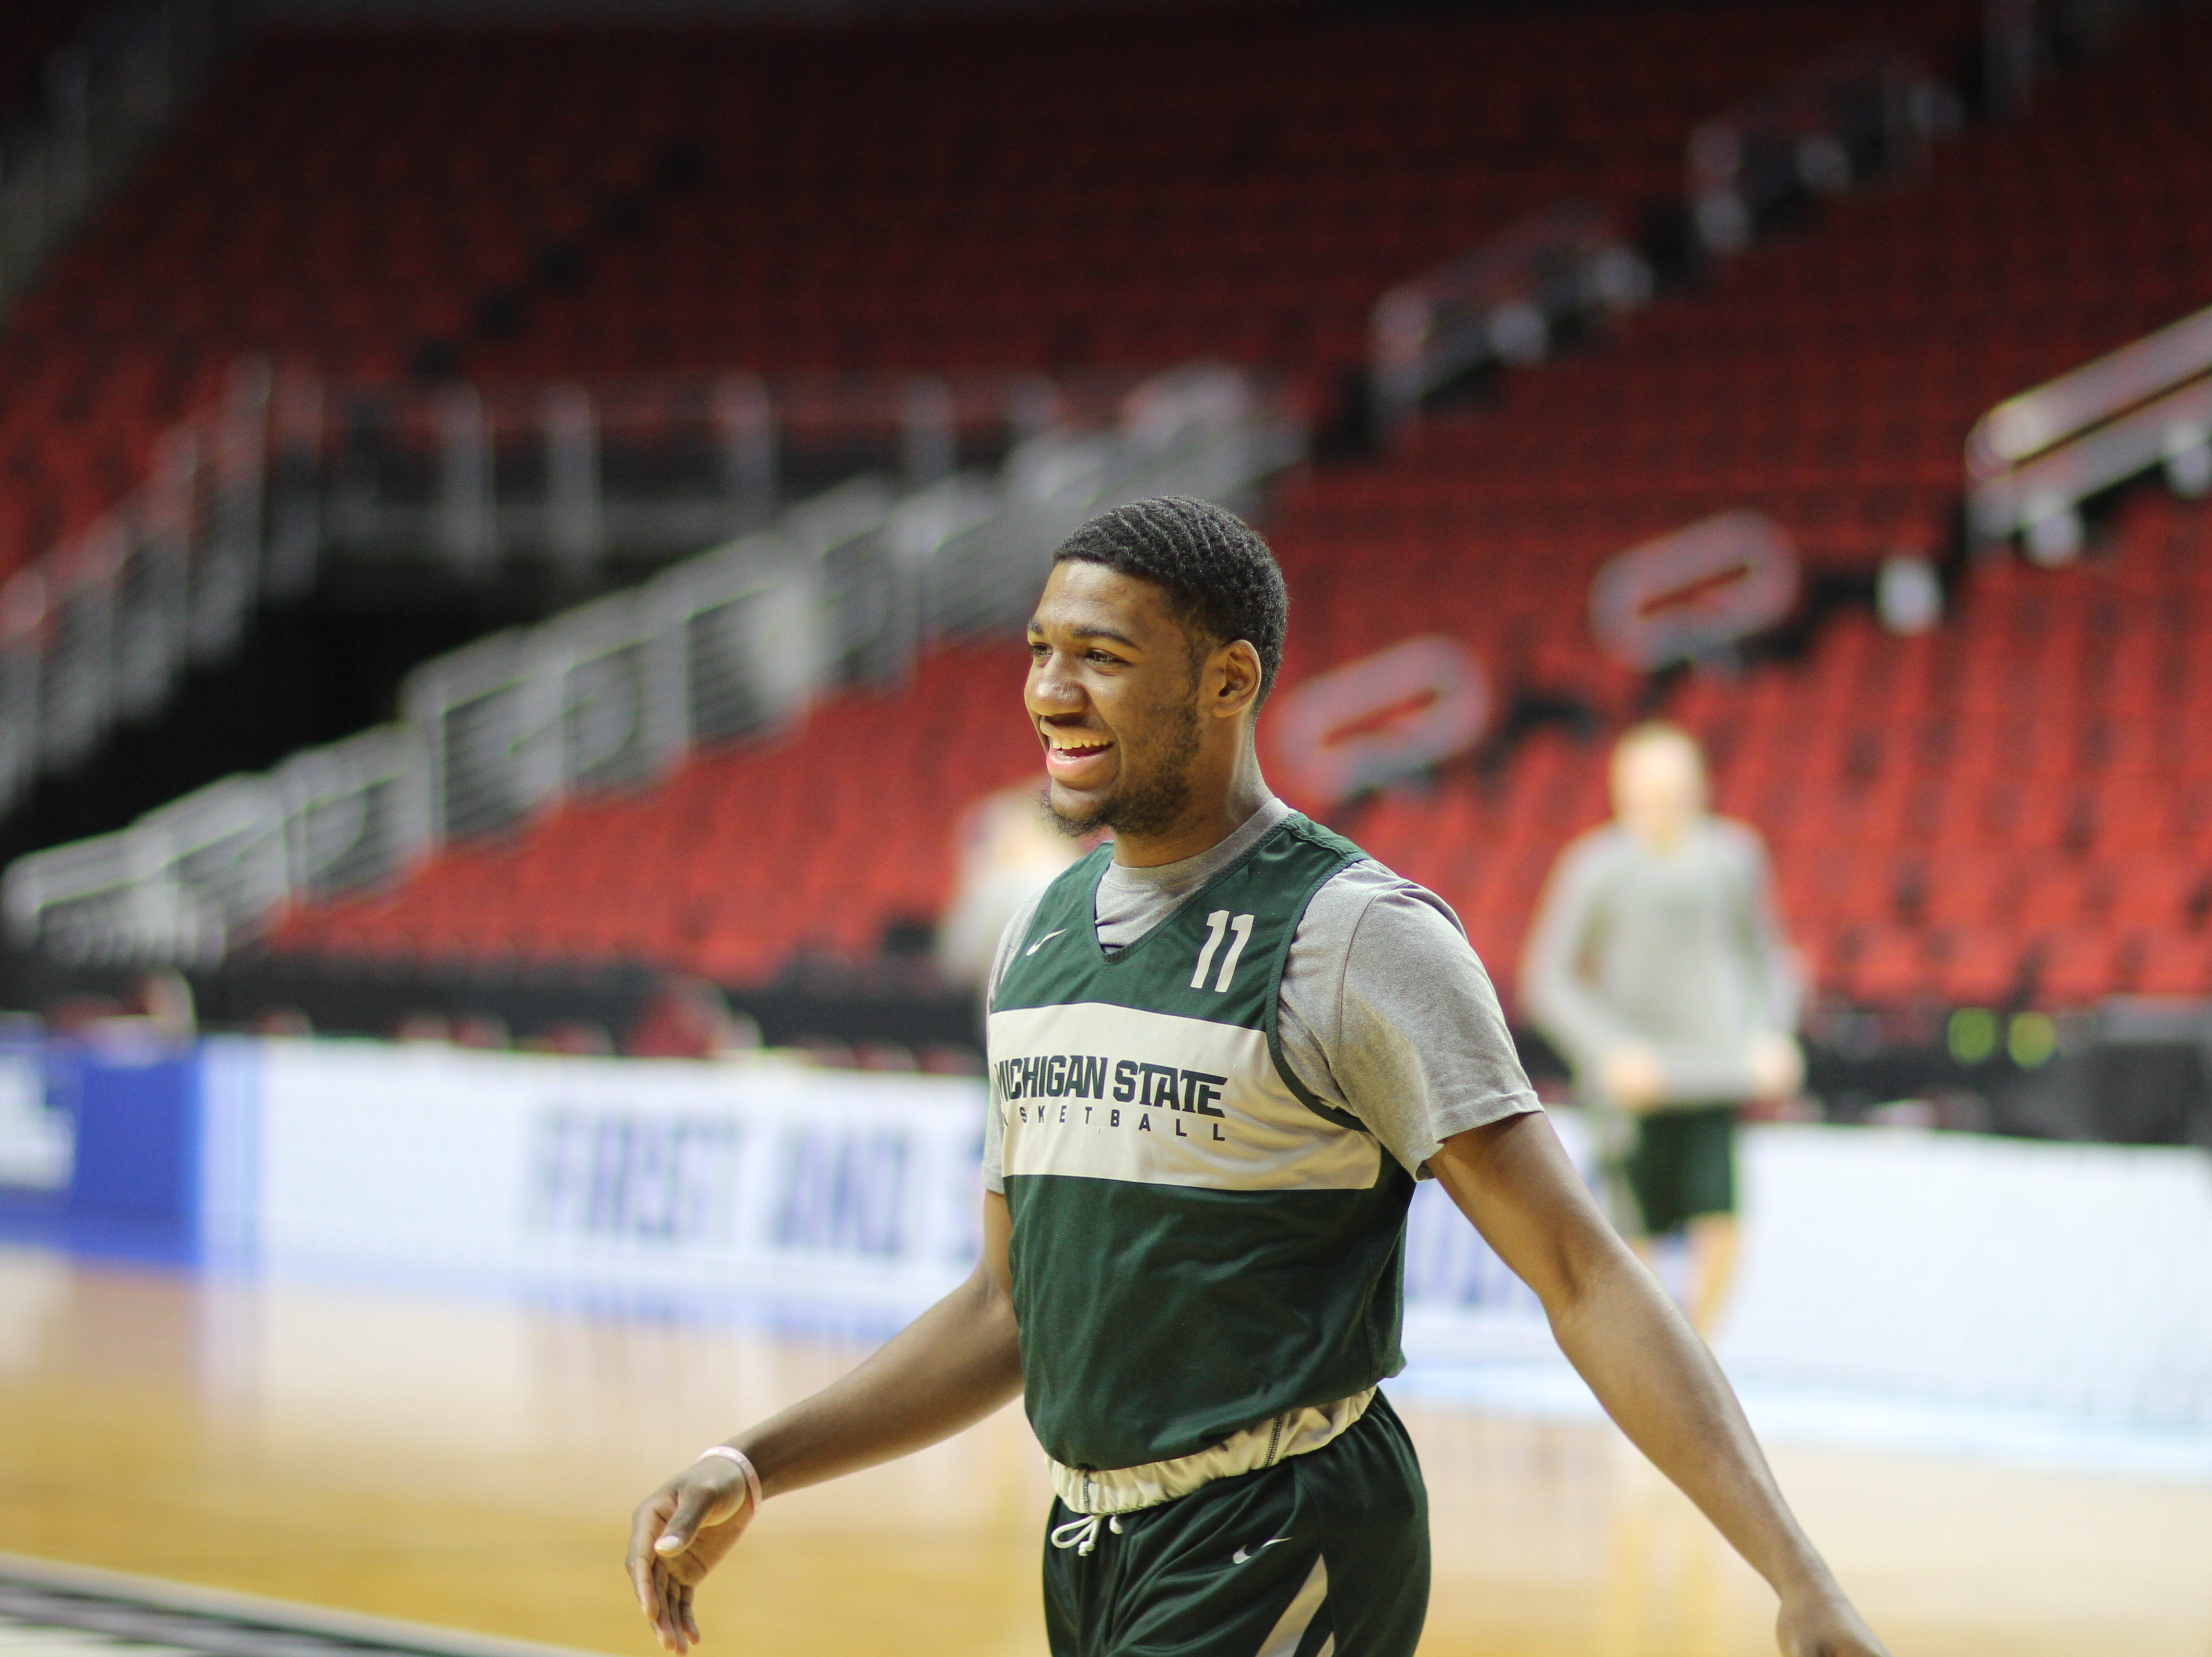 Michigan State guard Aaron Henry during practice.